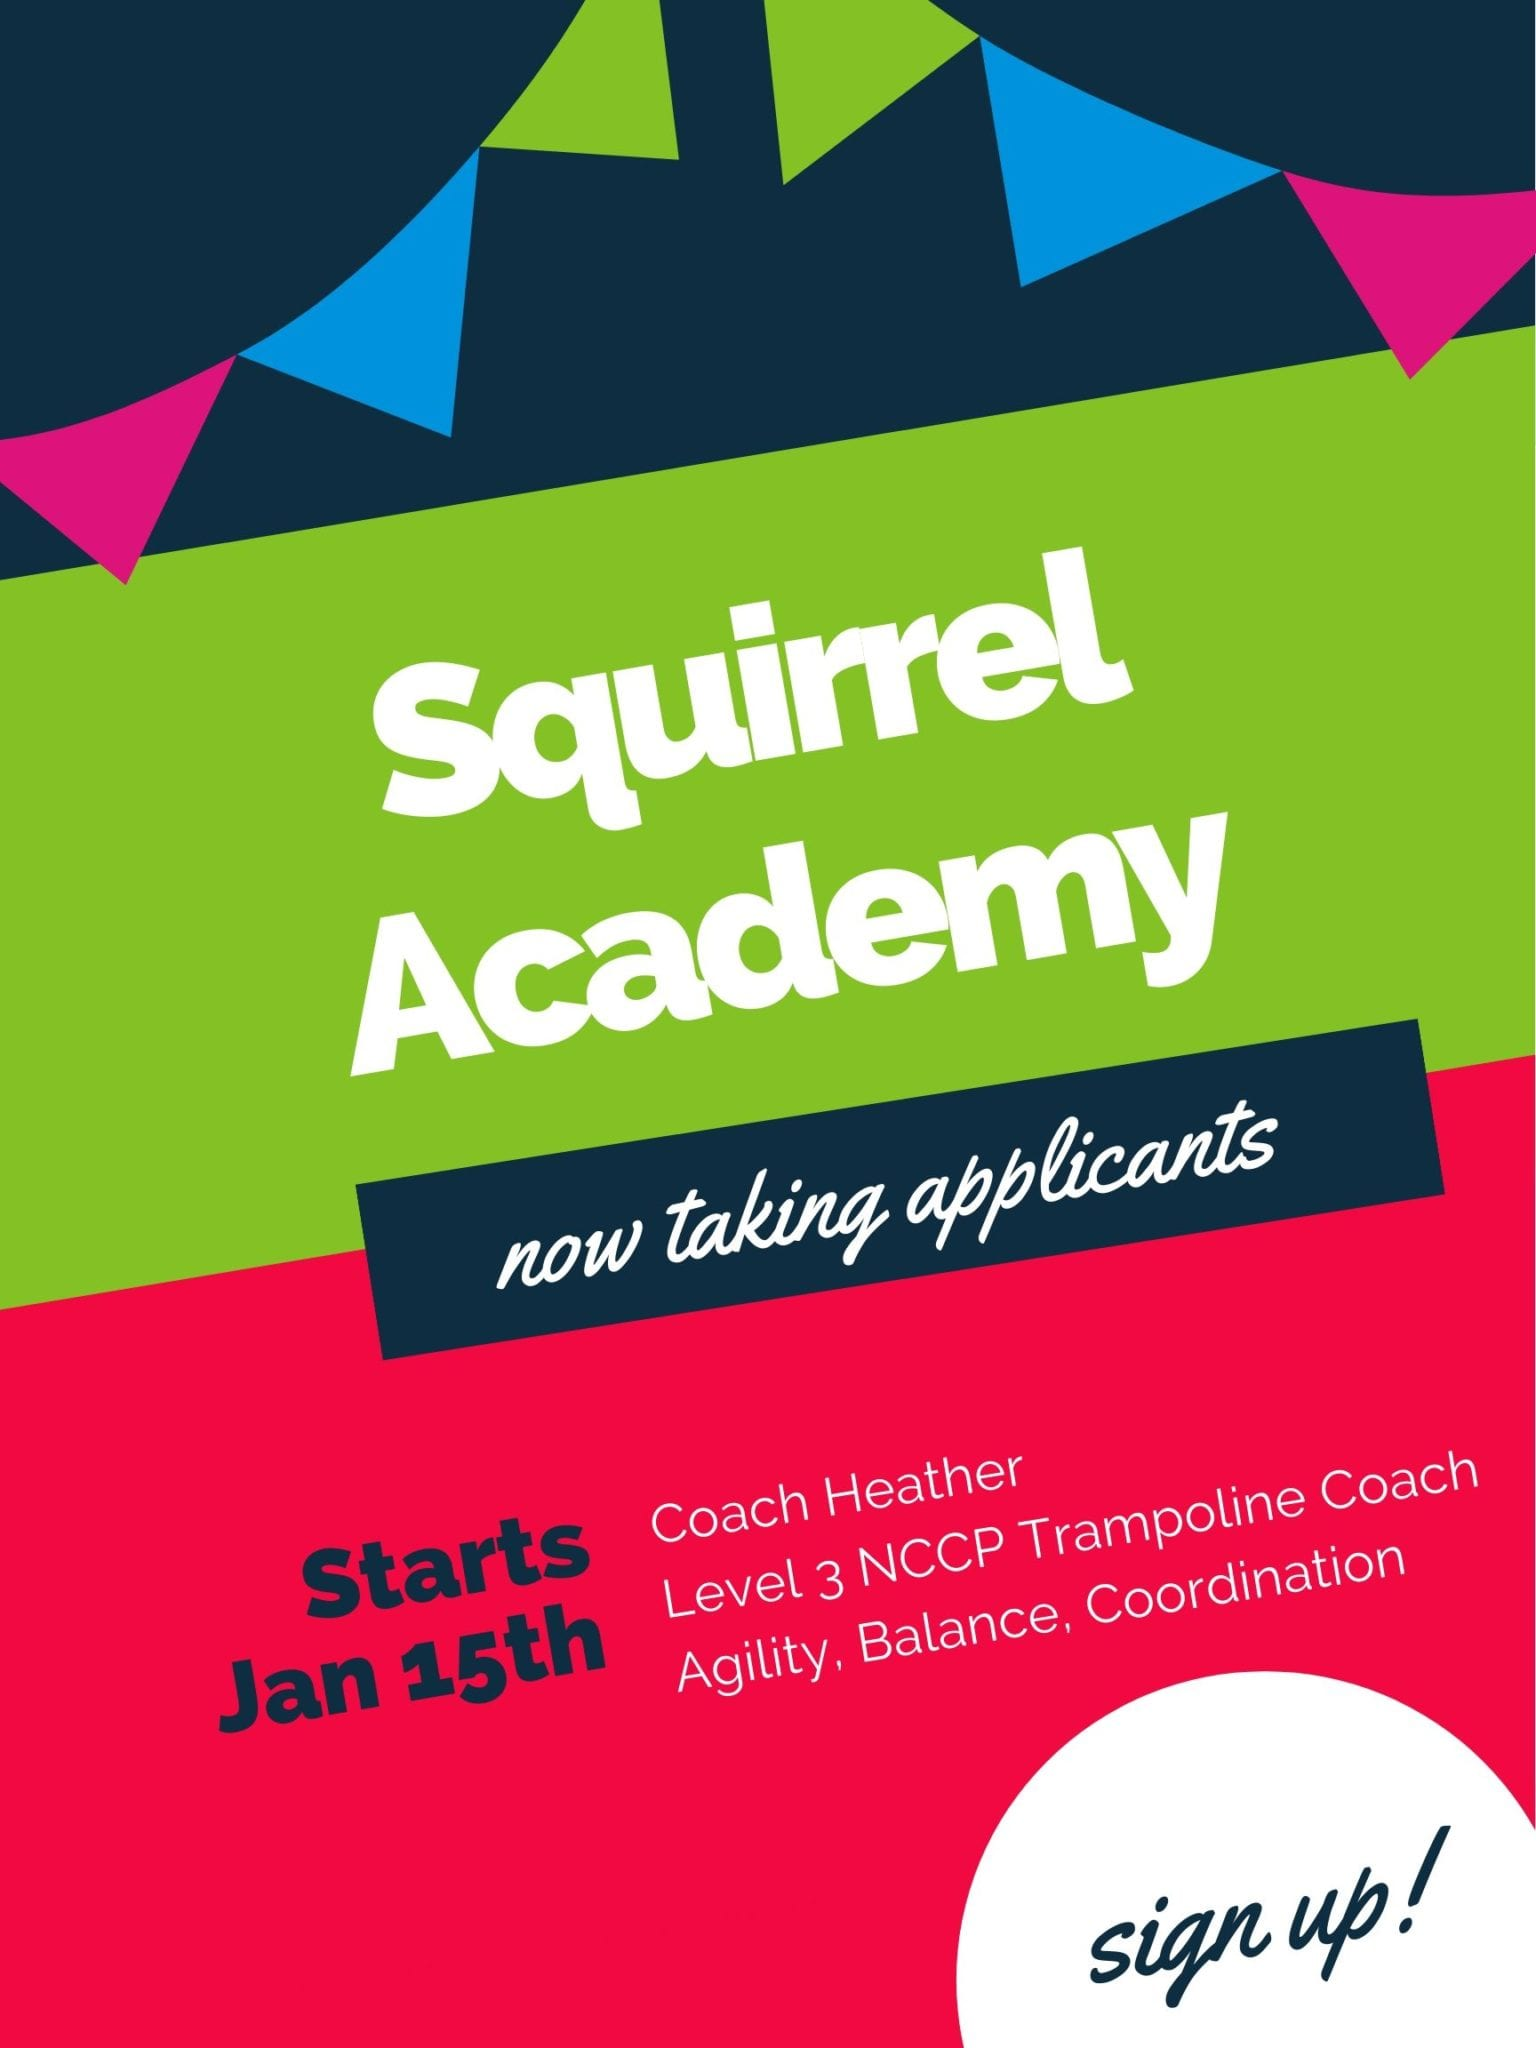 squirrelacademyjan15th